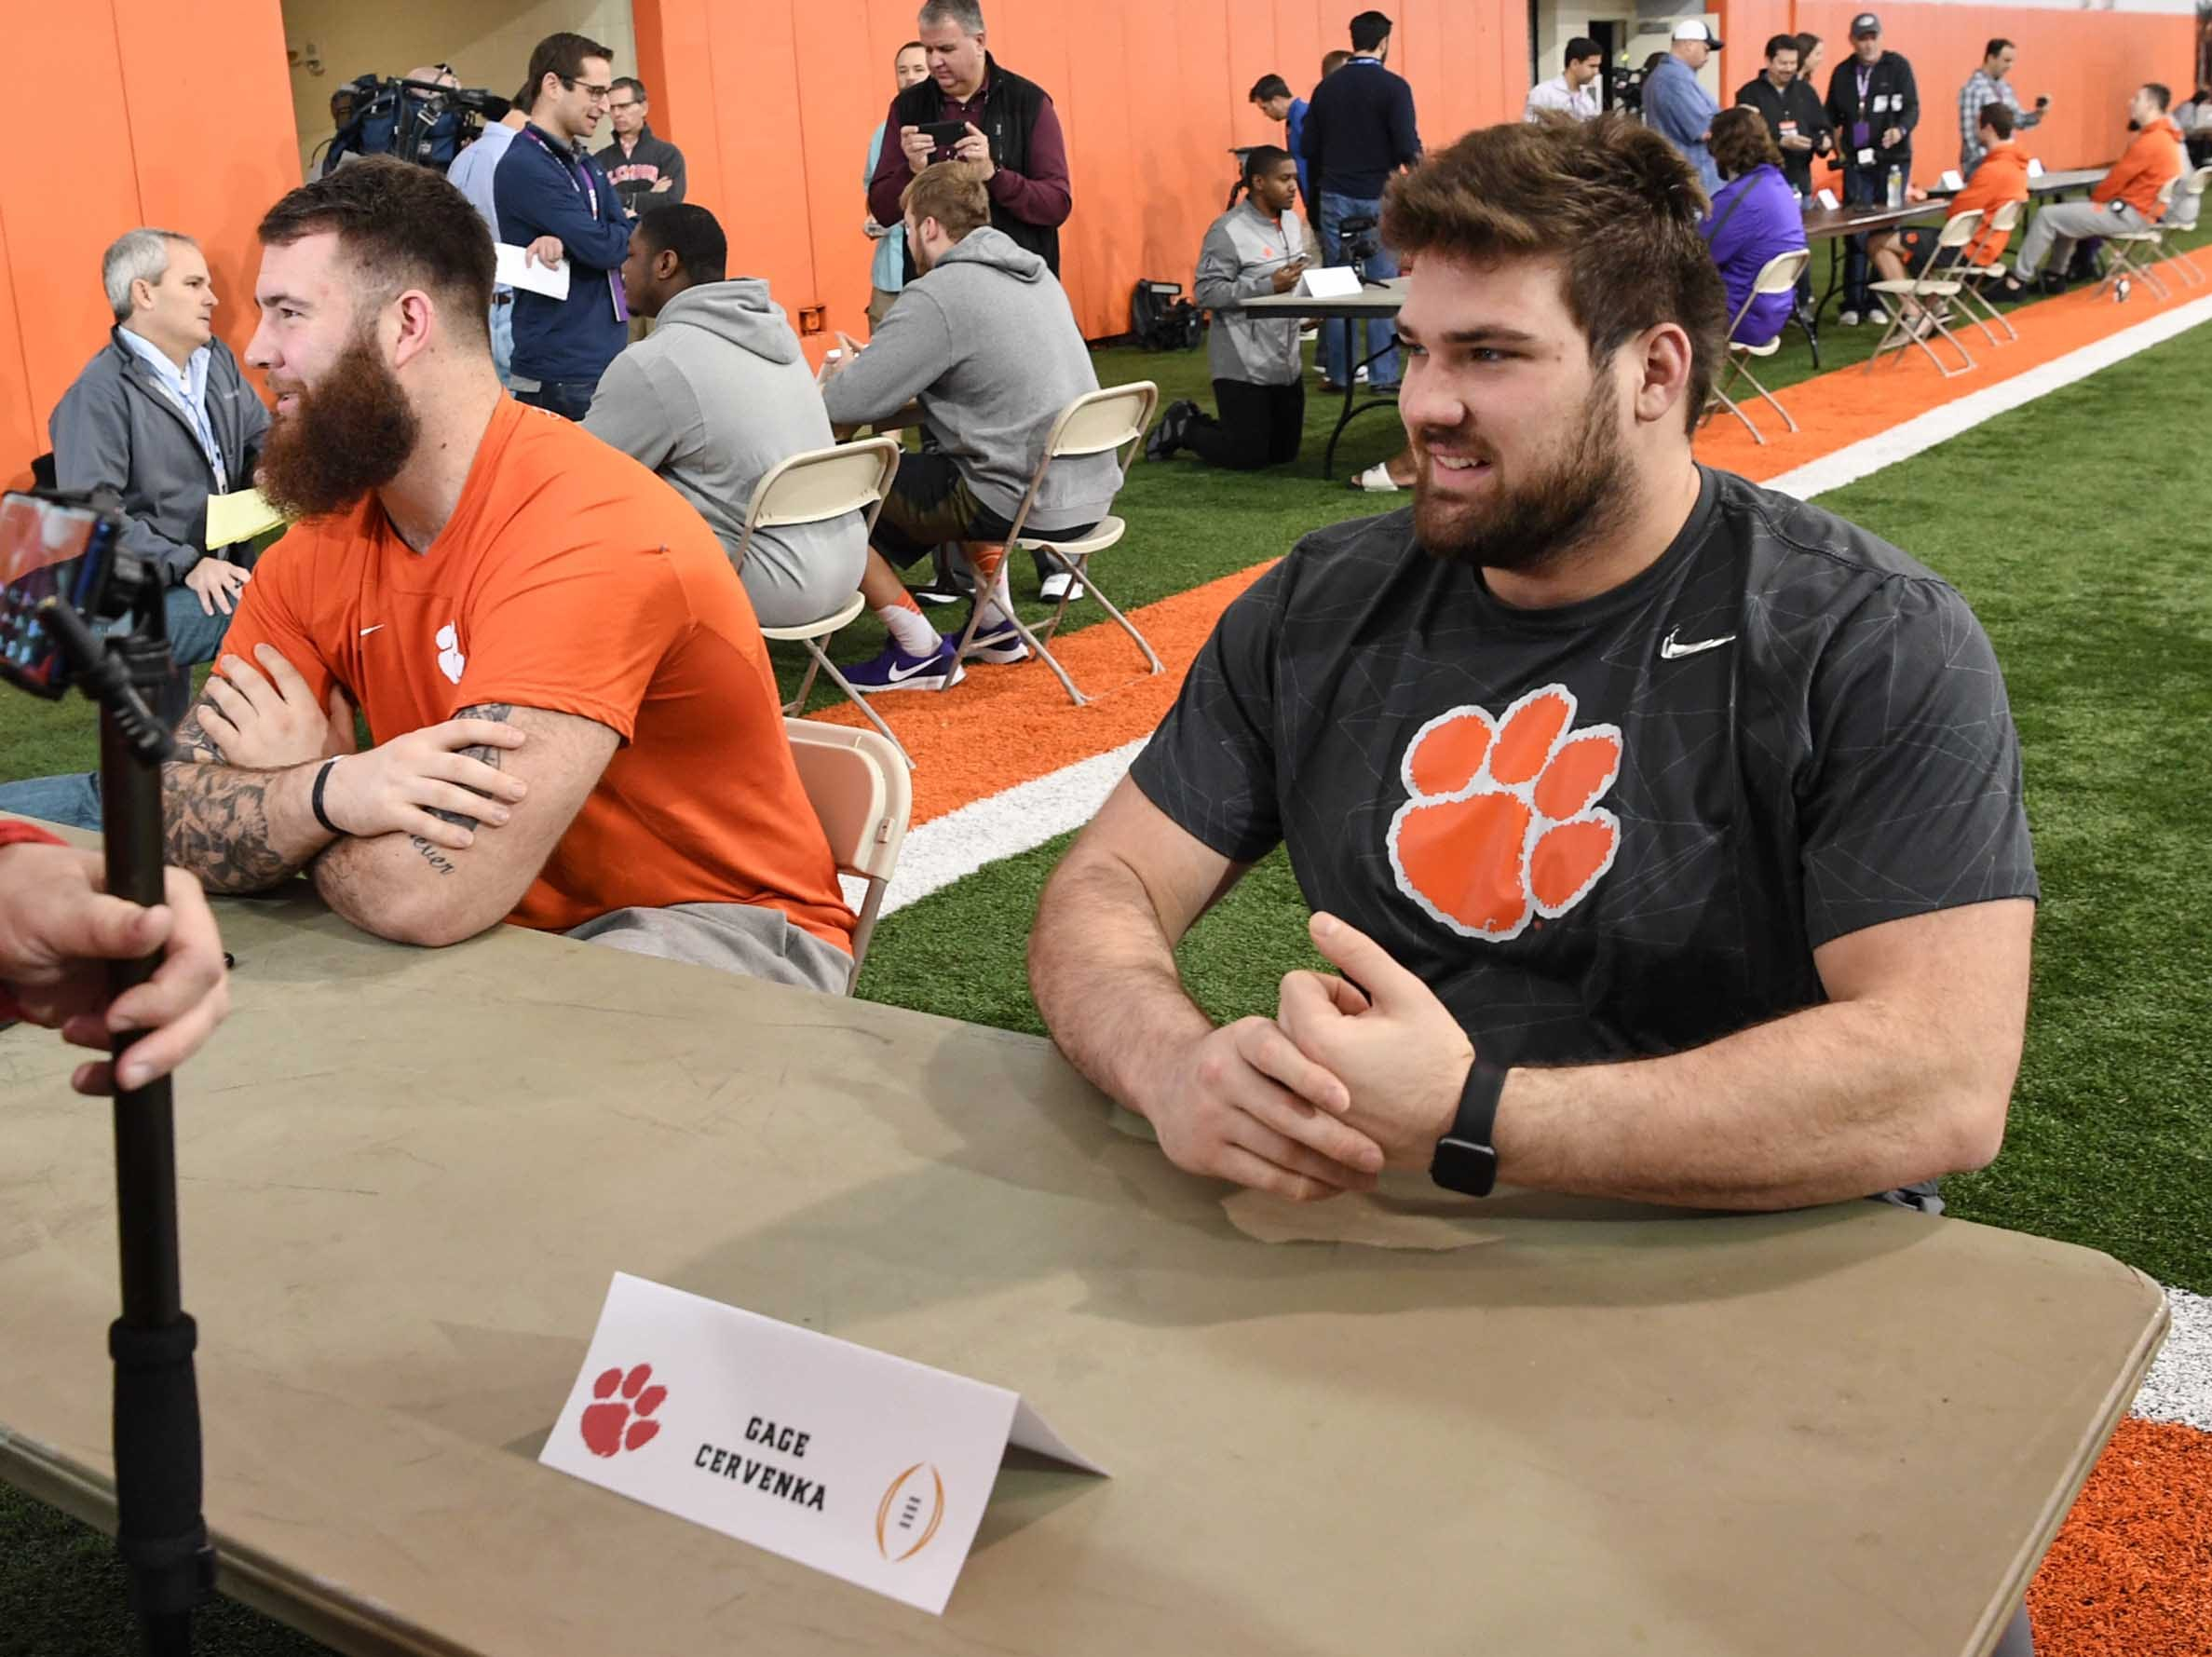 Clemson offensive lineman Gage Cervenka talks during media day in the Poe Indoor Facility in Clemson Wednesday, January 2, 2019.